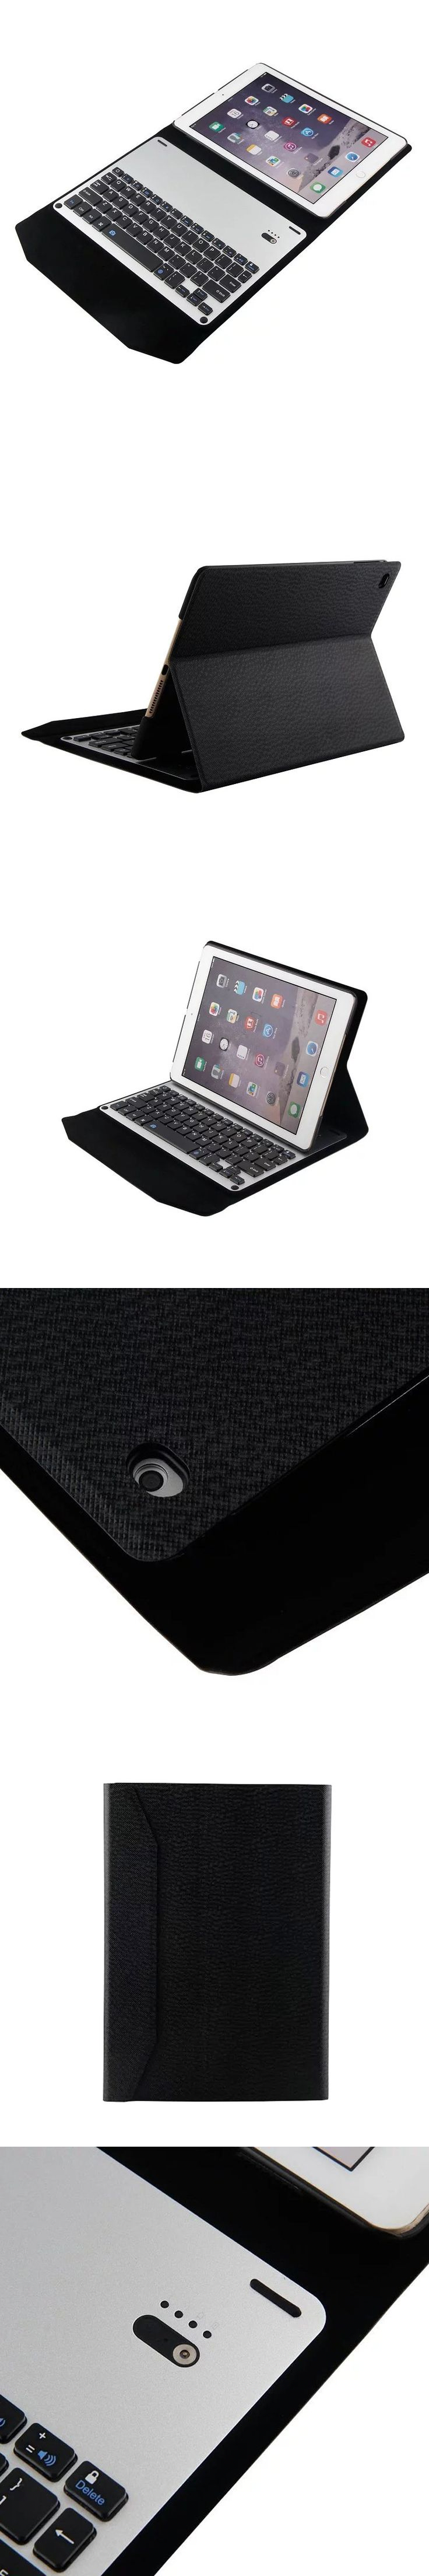 Slim Aluminum wireless Bluetooth Keyboard case For iPad air 2 case with keyboard flip stand magnetic